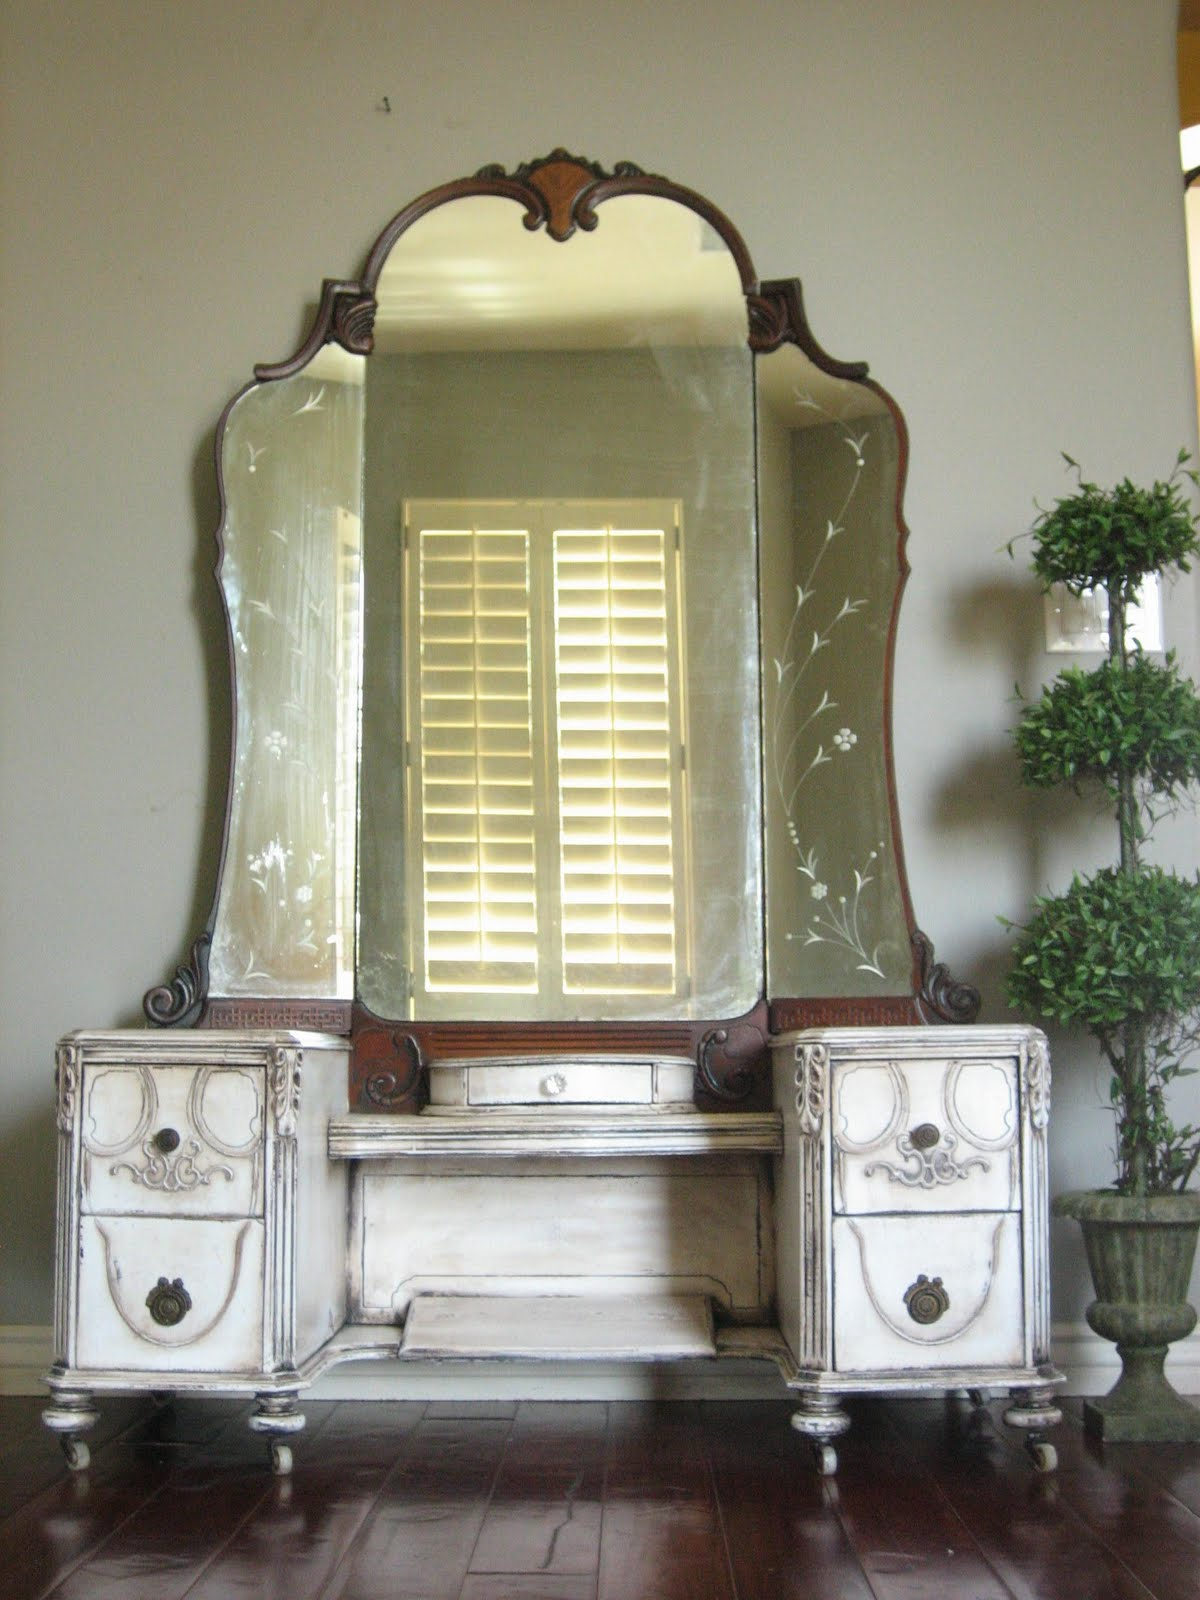 Antique Dressing Vanity - European Paint Finishes: Antique Dressing Vanity